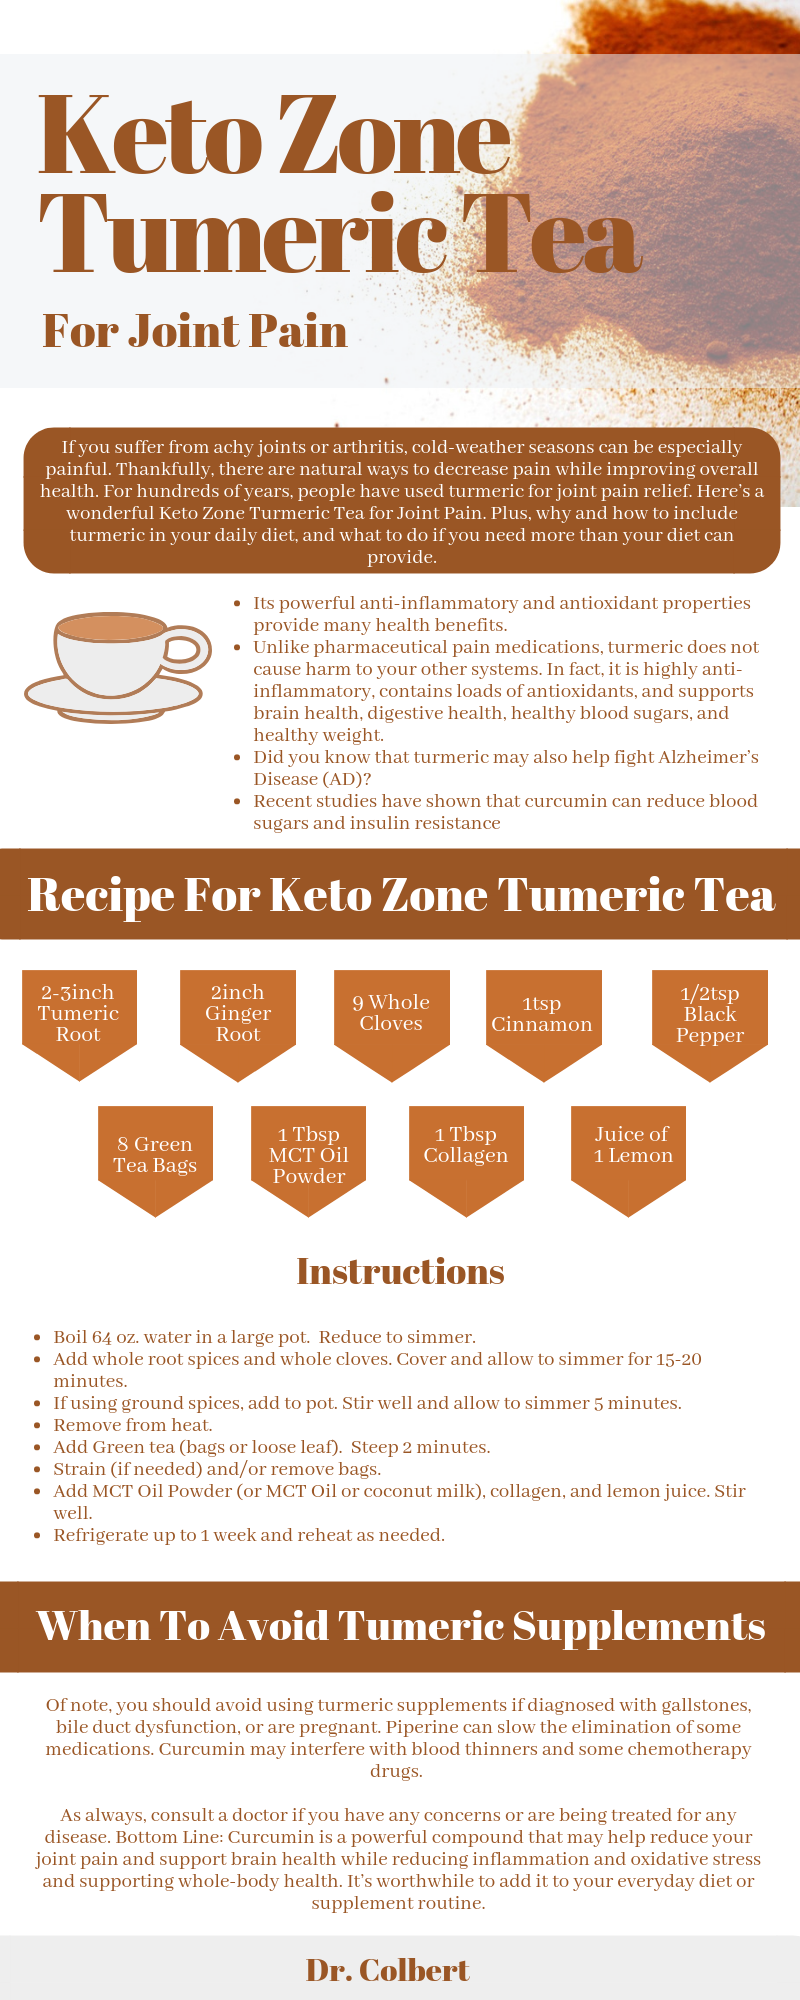 keto zone, turmeric for joint pain, turmeric benefits, joint pain, dr Colbert, mct oil powder, hydrolyzed collagen